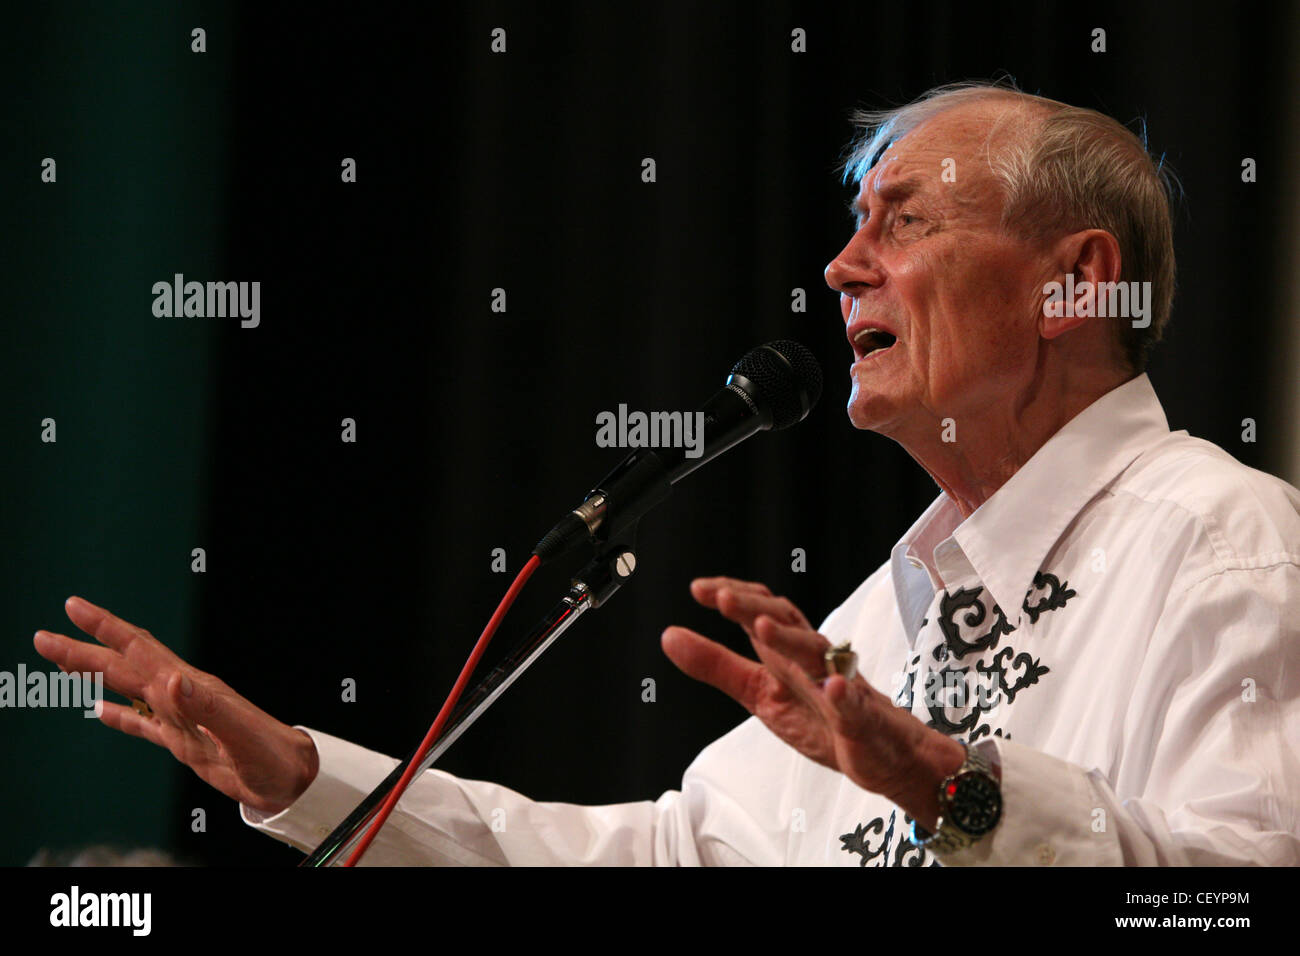 Soviet and Russian poet Yevgeny Yevtushenko performs in the Russian Cultural Centre in Prague, Czech Republic, on - Stock Image